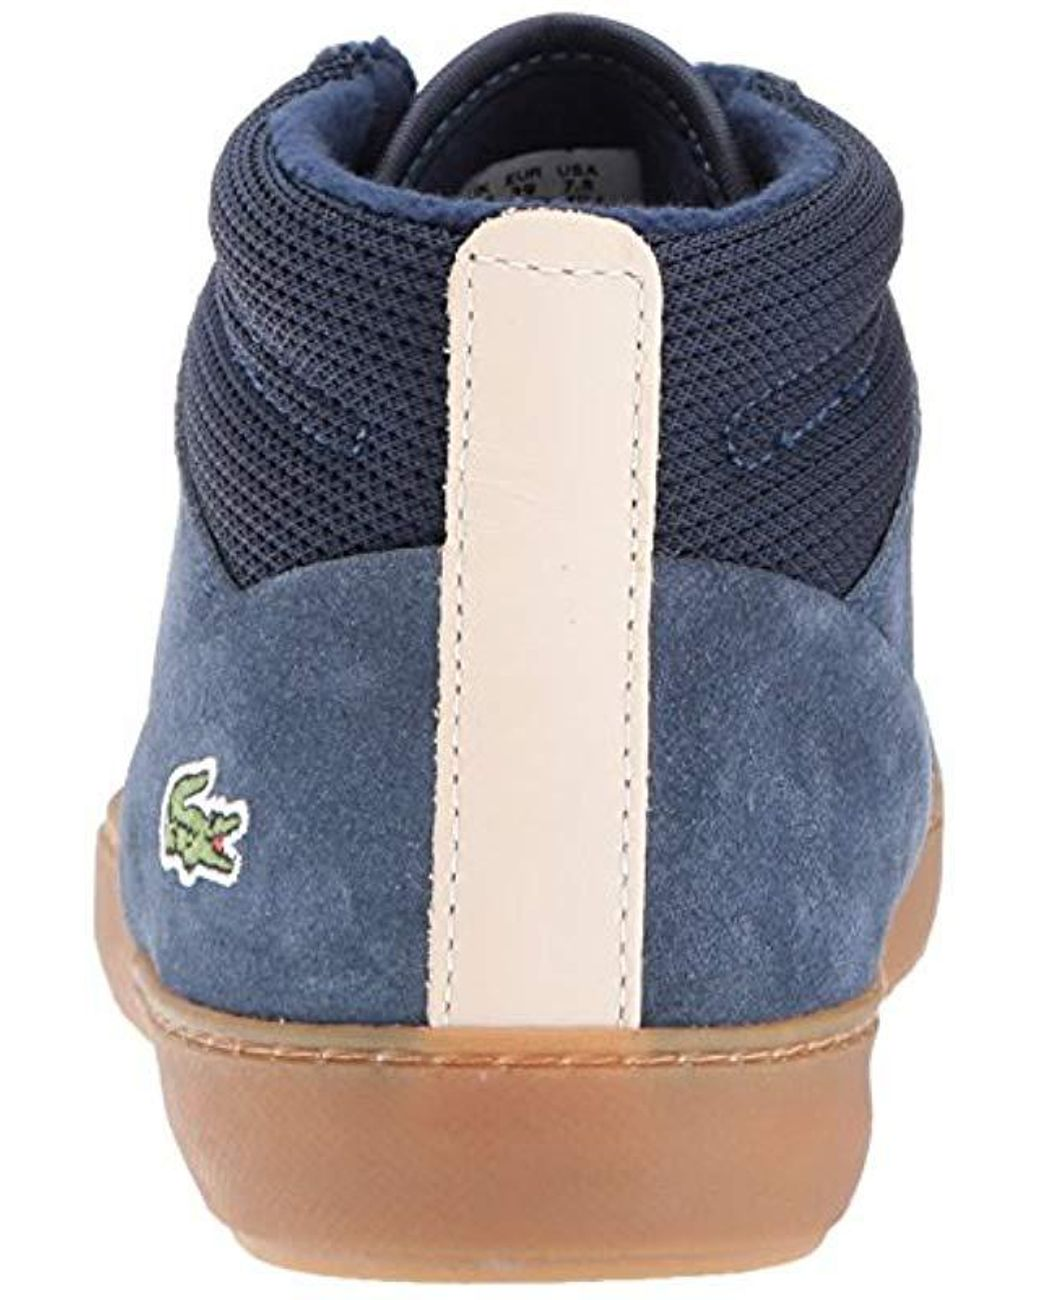 12db42b5c Lyst - Lacoste Ampthill Chukka 417 1 Caw Hi-top Trainers in Blue